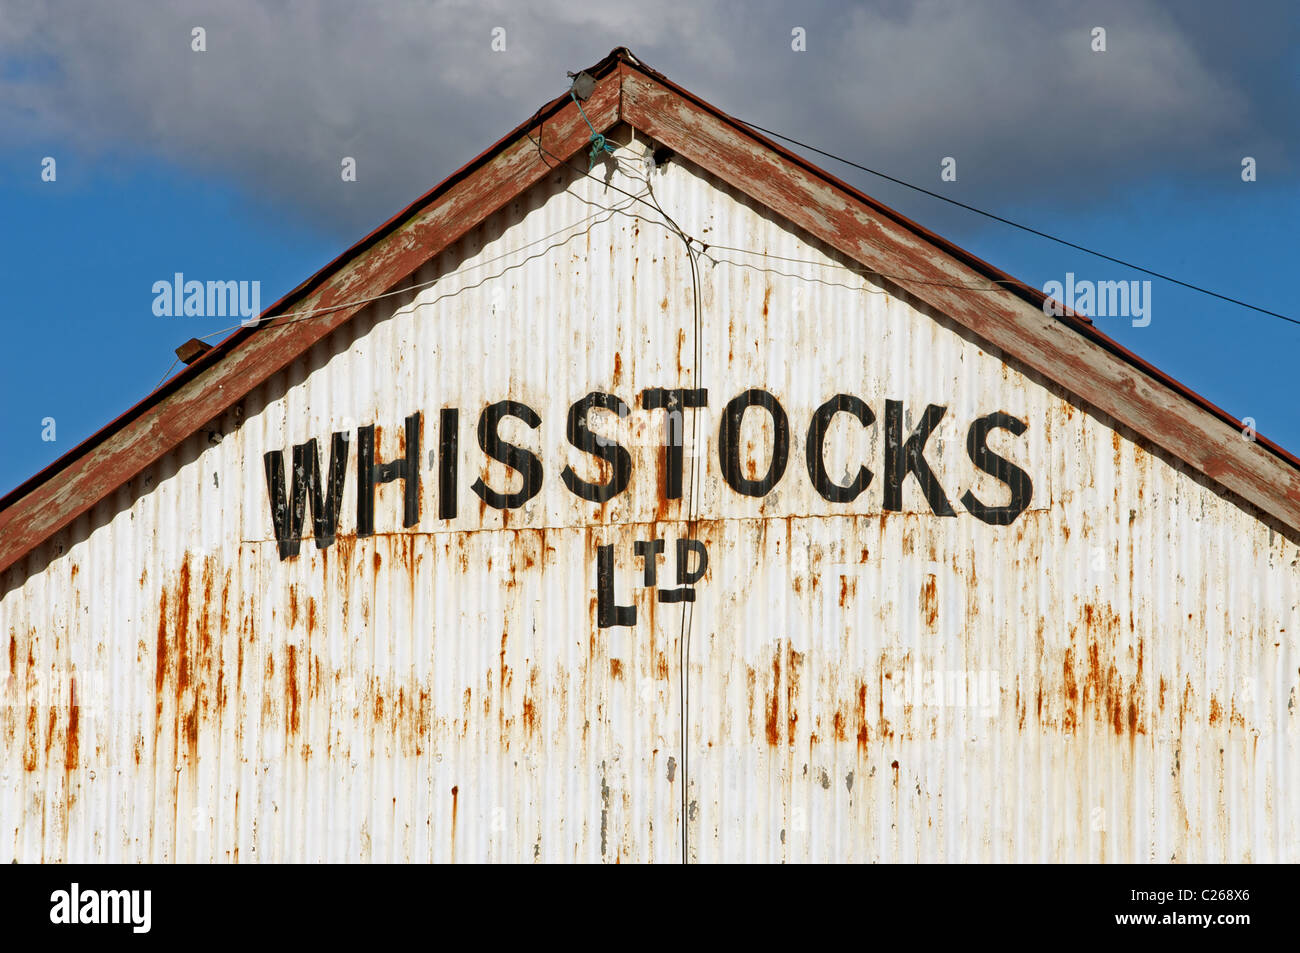 Whisstocks a family run boat building company no longer in business, Woodbridge, Suffolk, UK. - Stock Image